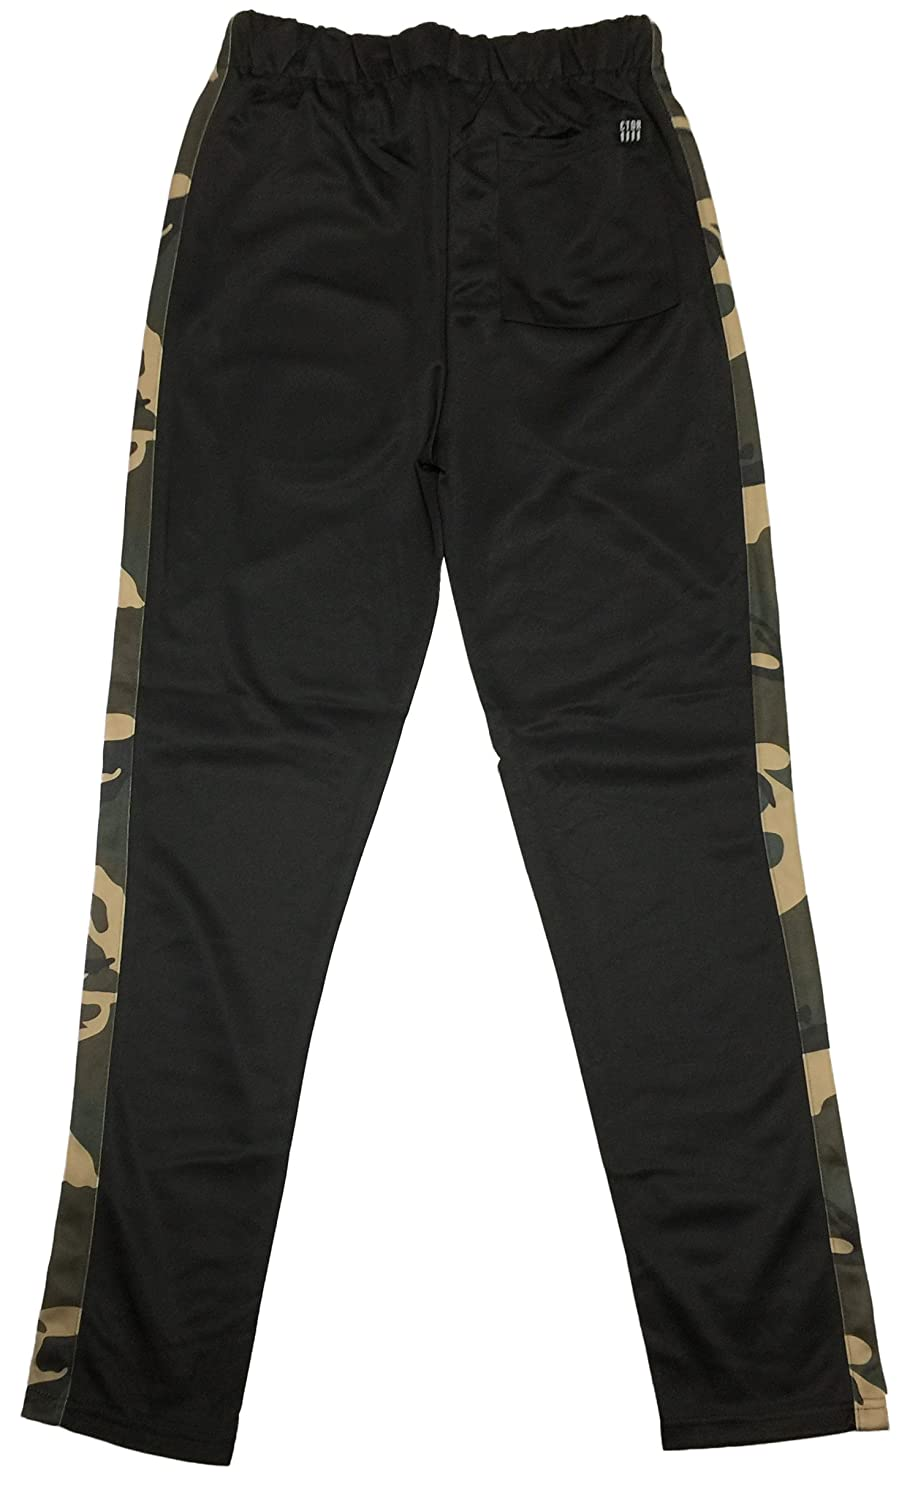 Men's Clothing Contender Royal/white Side Stripe Track Pants At Any Cost